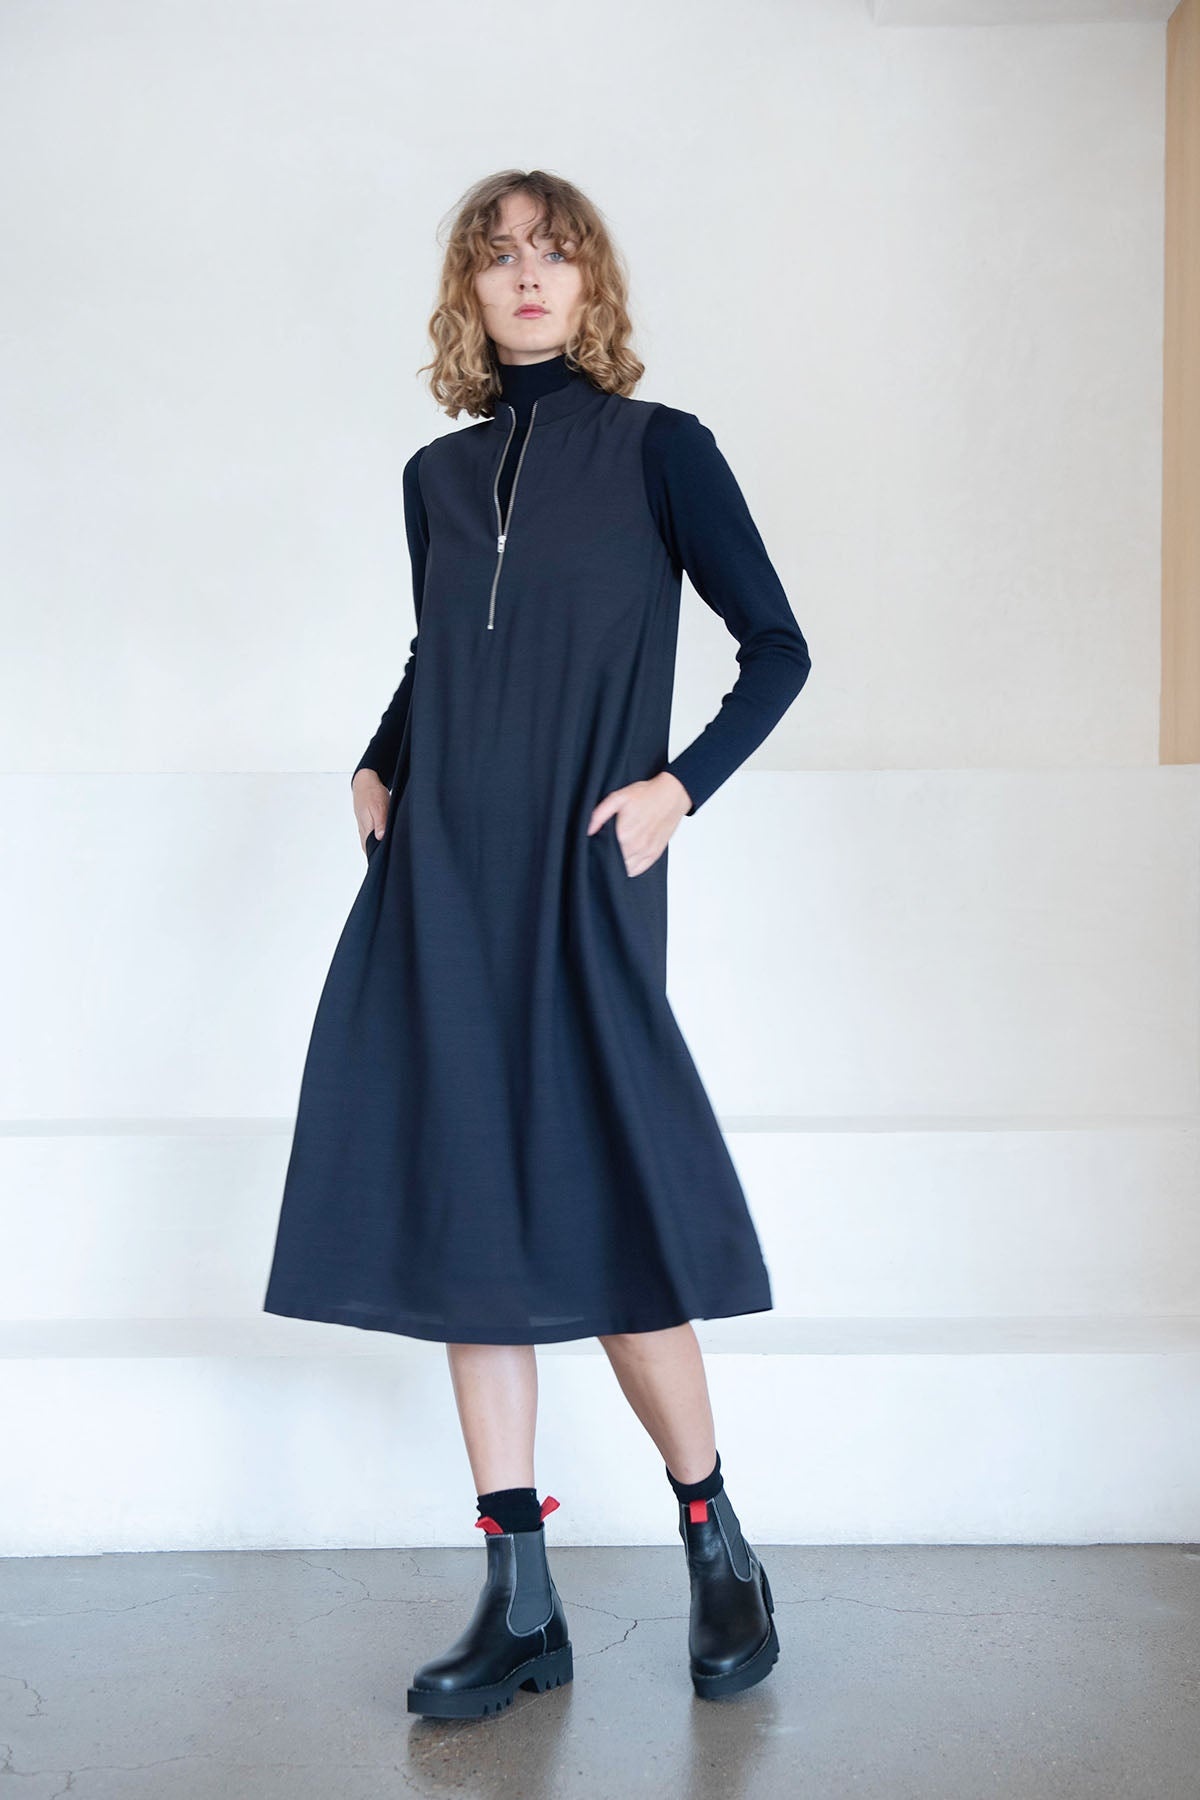 Stephan Schneider - dogma dress, navy